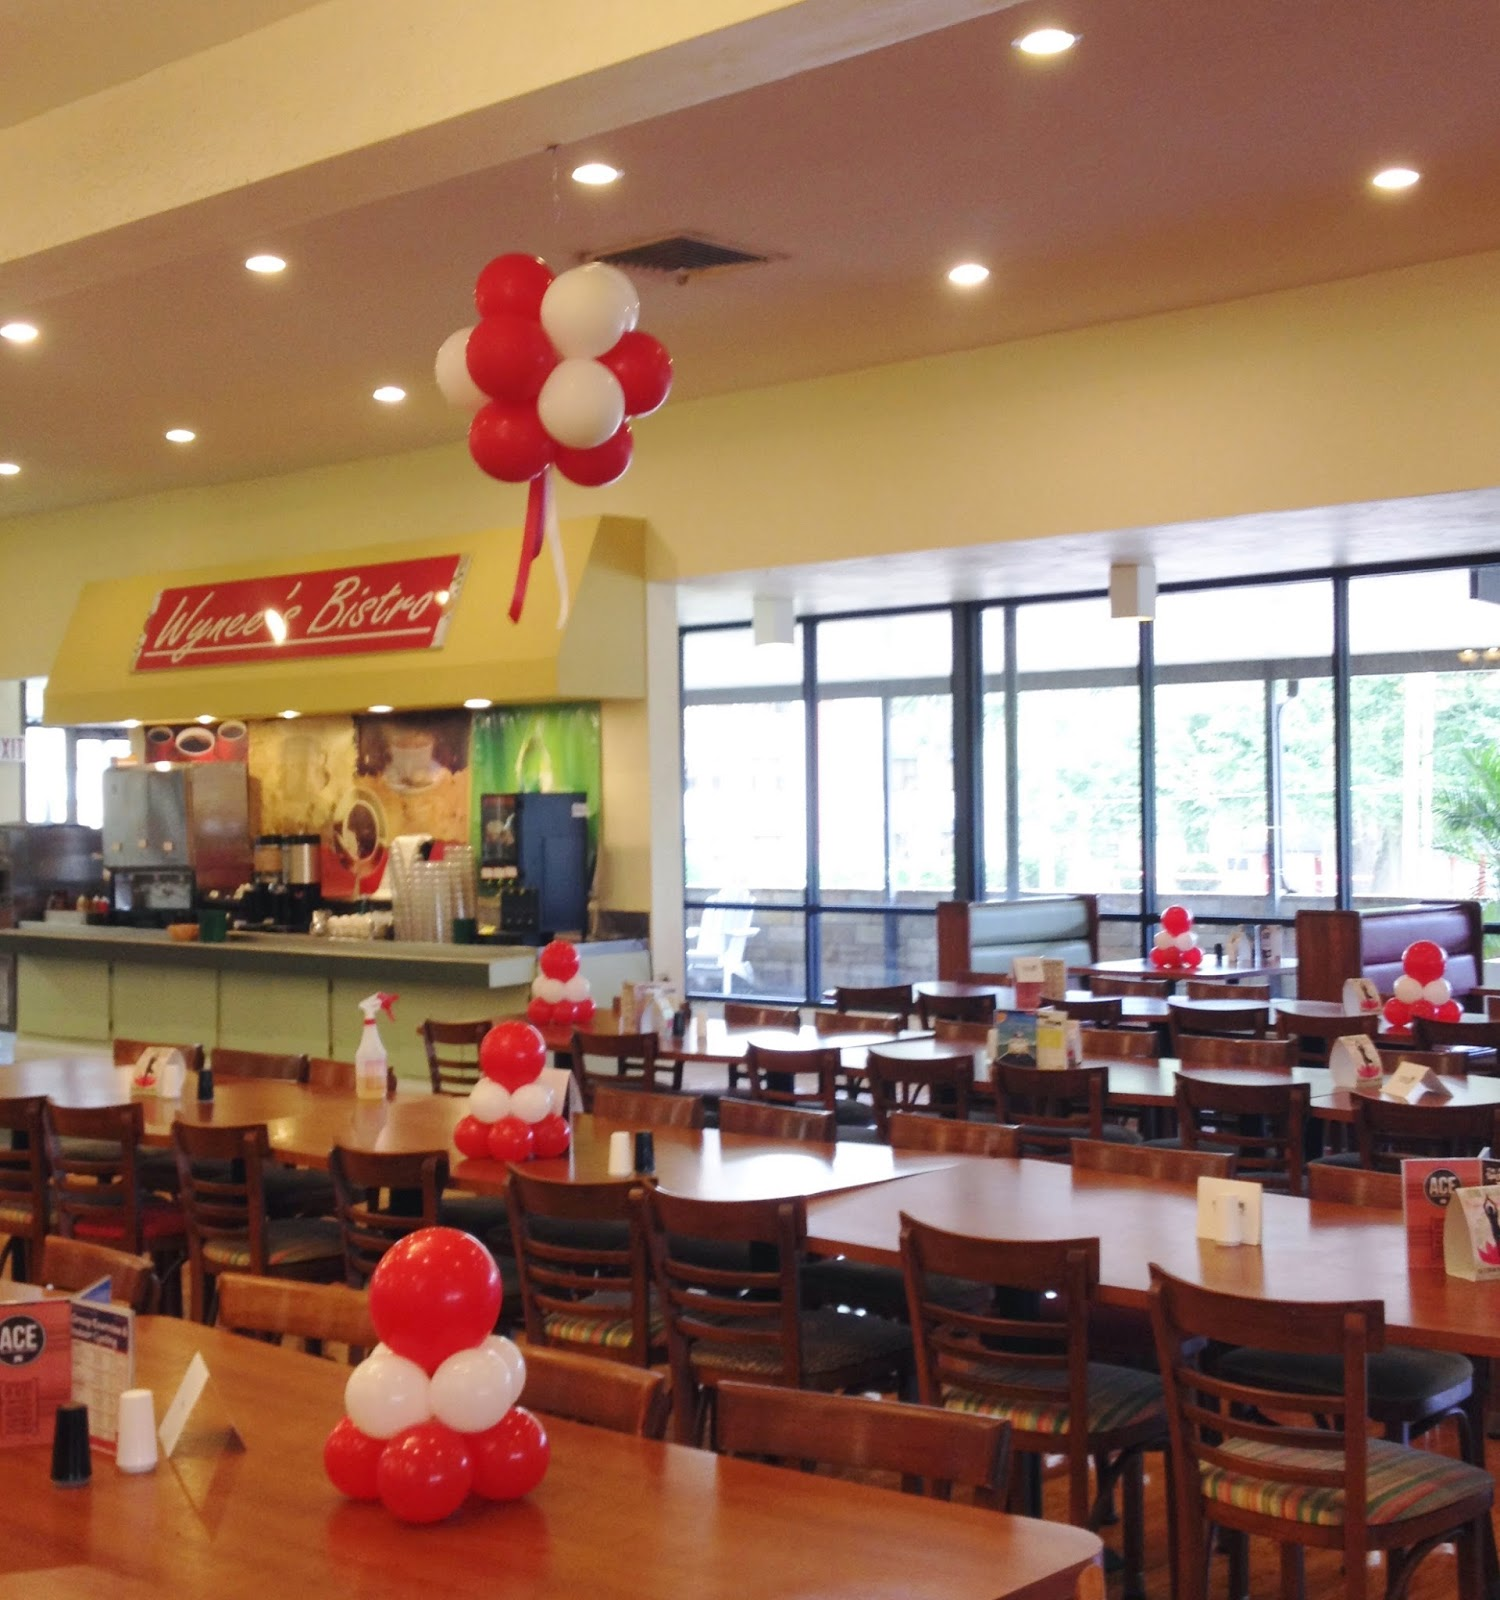 Party people event decorating company florida southern college family